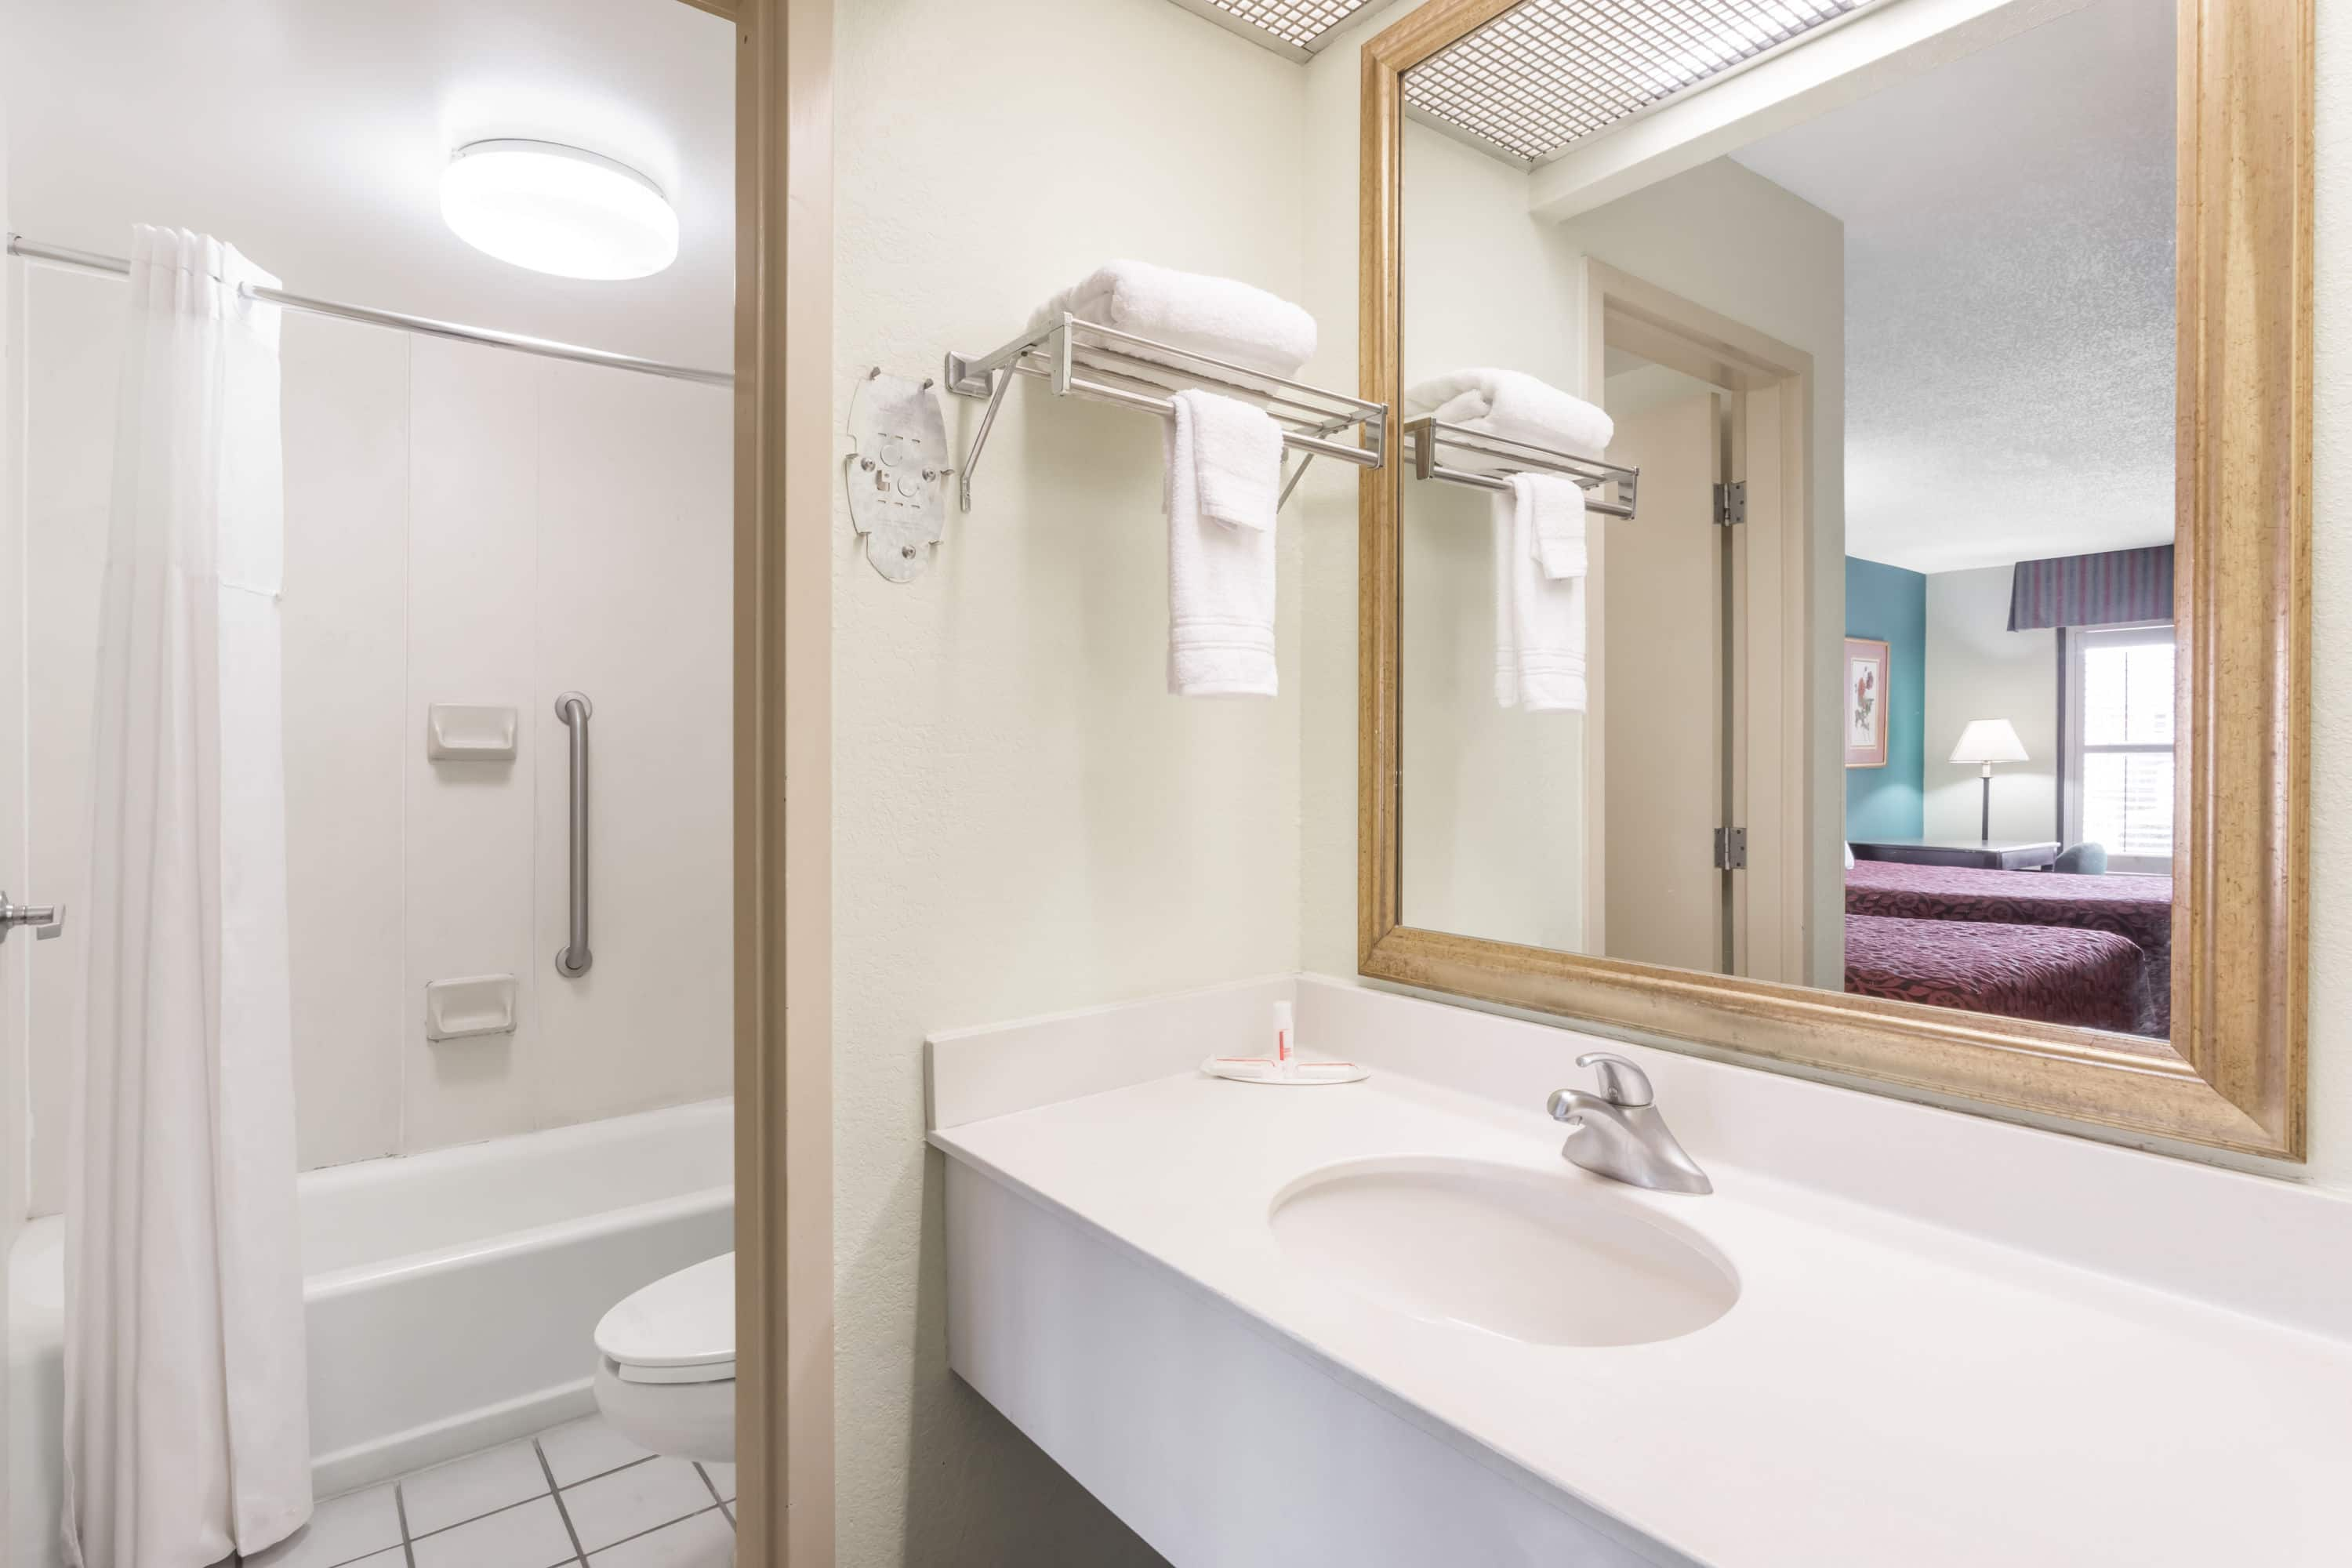 Beautiful Photos And Videos Of Days Inn Marianna Hotels In Florida With Near Fl